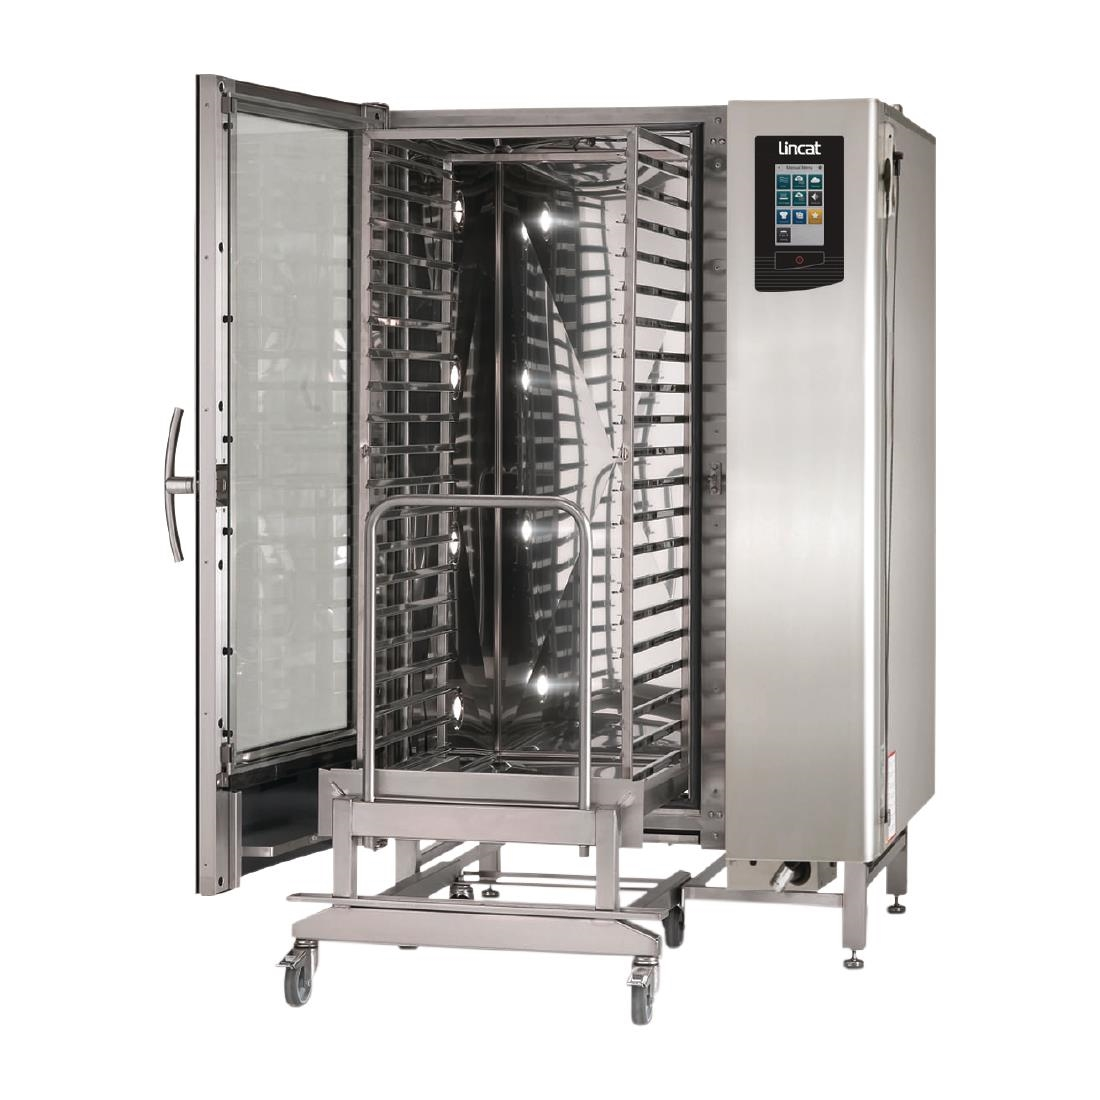 Image of Lincat Visual Cooking Electric Injection Combi Oven 20 Grid LC220I Oven Only